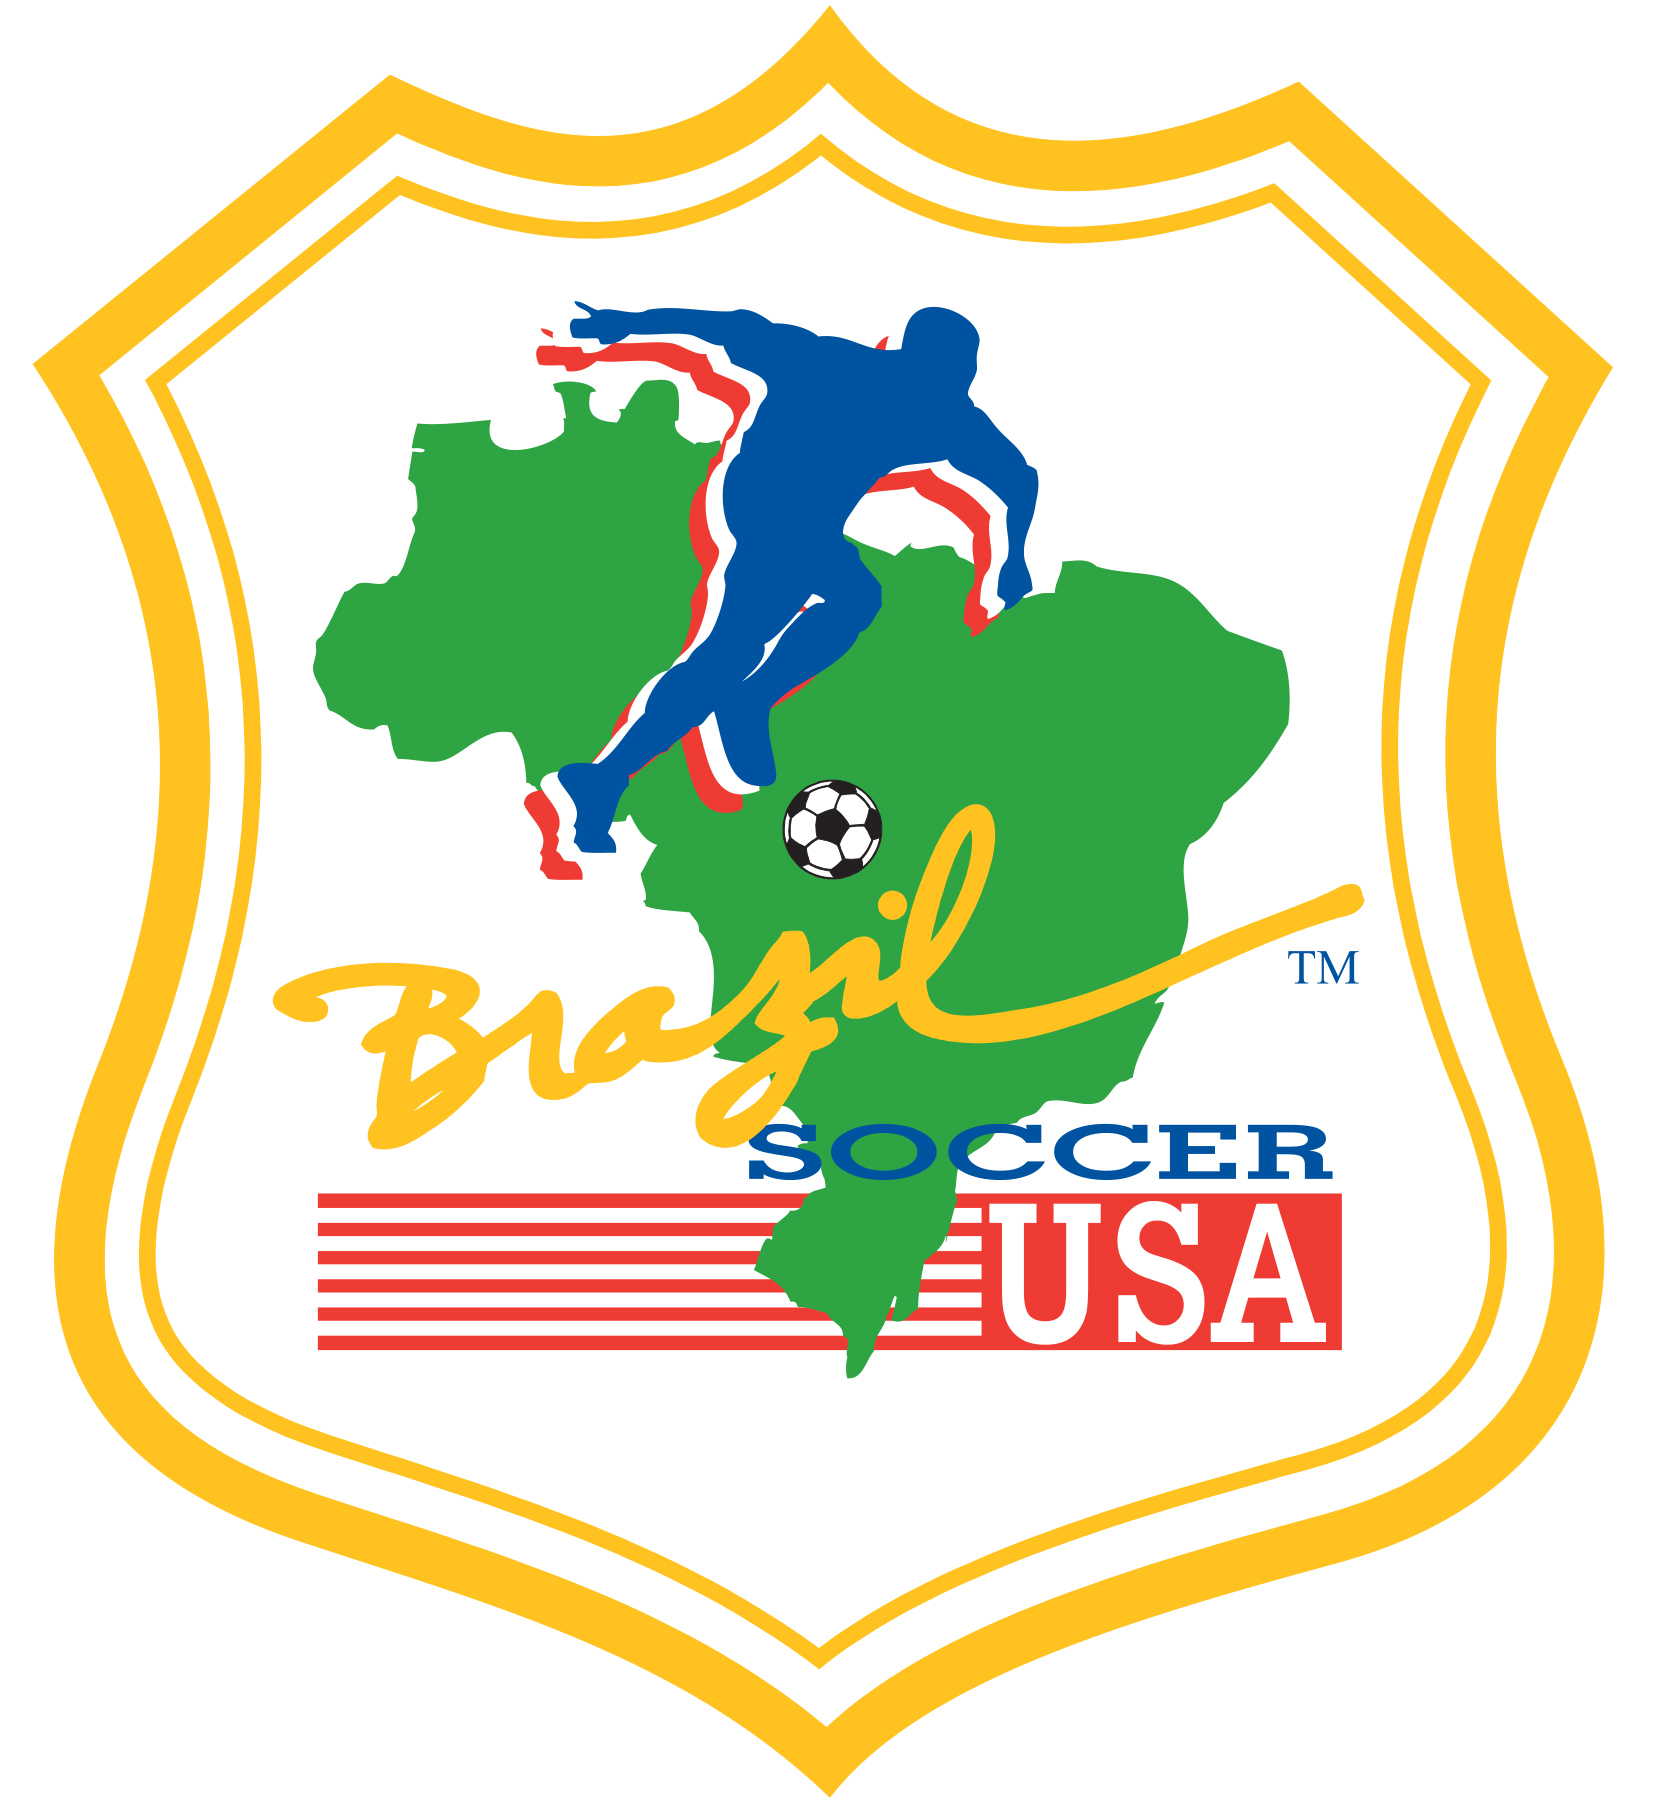 logo of Brazil Soccer USA